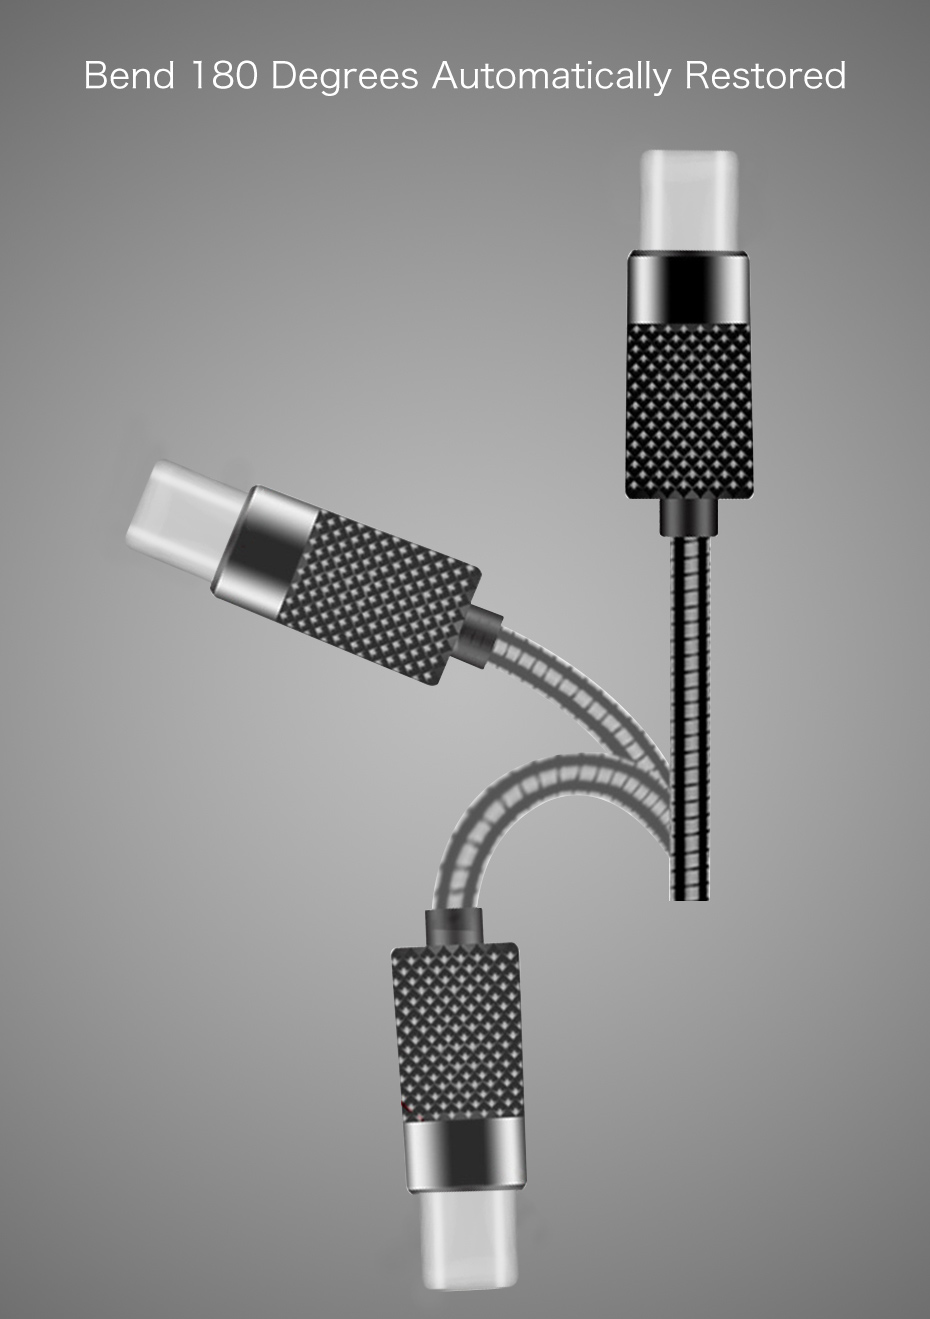 Spring-zinc-alloy-pineapple-shaped-micro-usb-Andrews-data-cable-looks-beautiful-and-elegant-feel-good_01_09